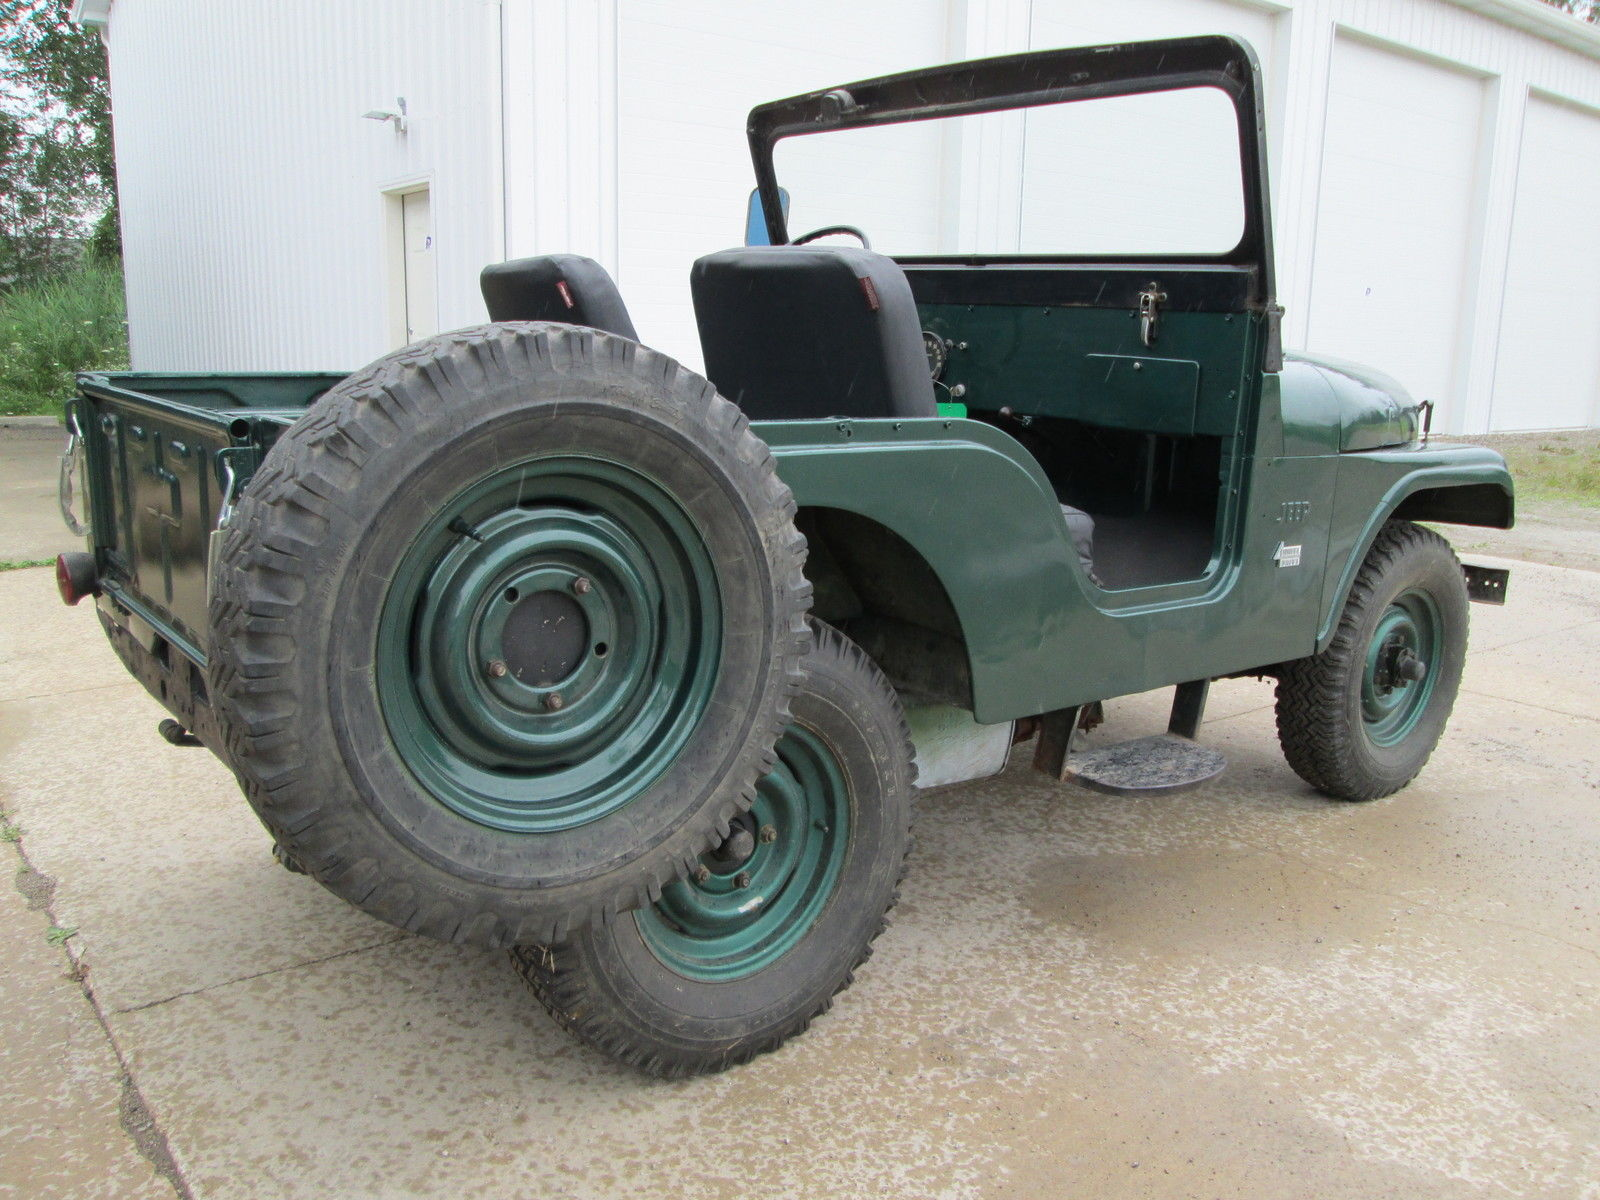 1956 Willys Jeep Cj5 Civilian Stored Indoors Classic